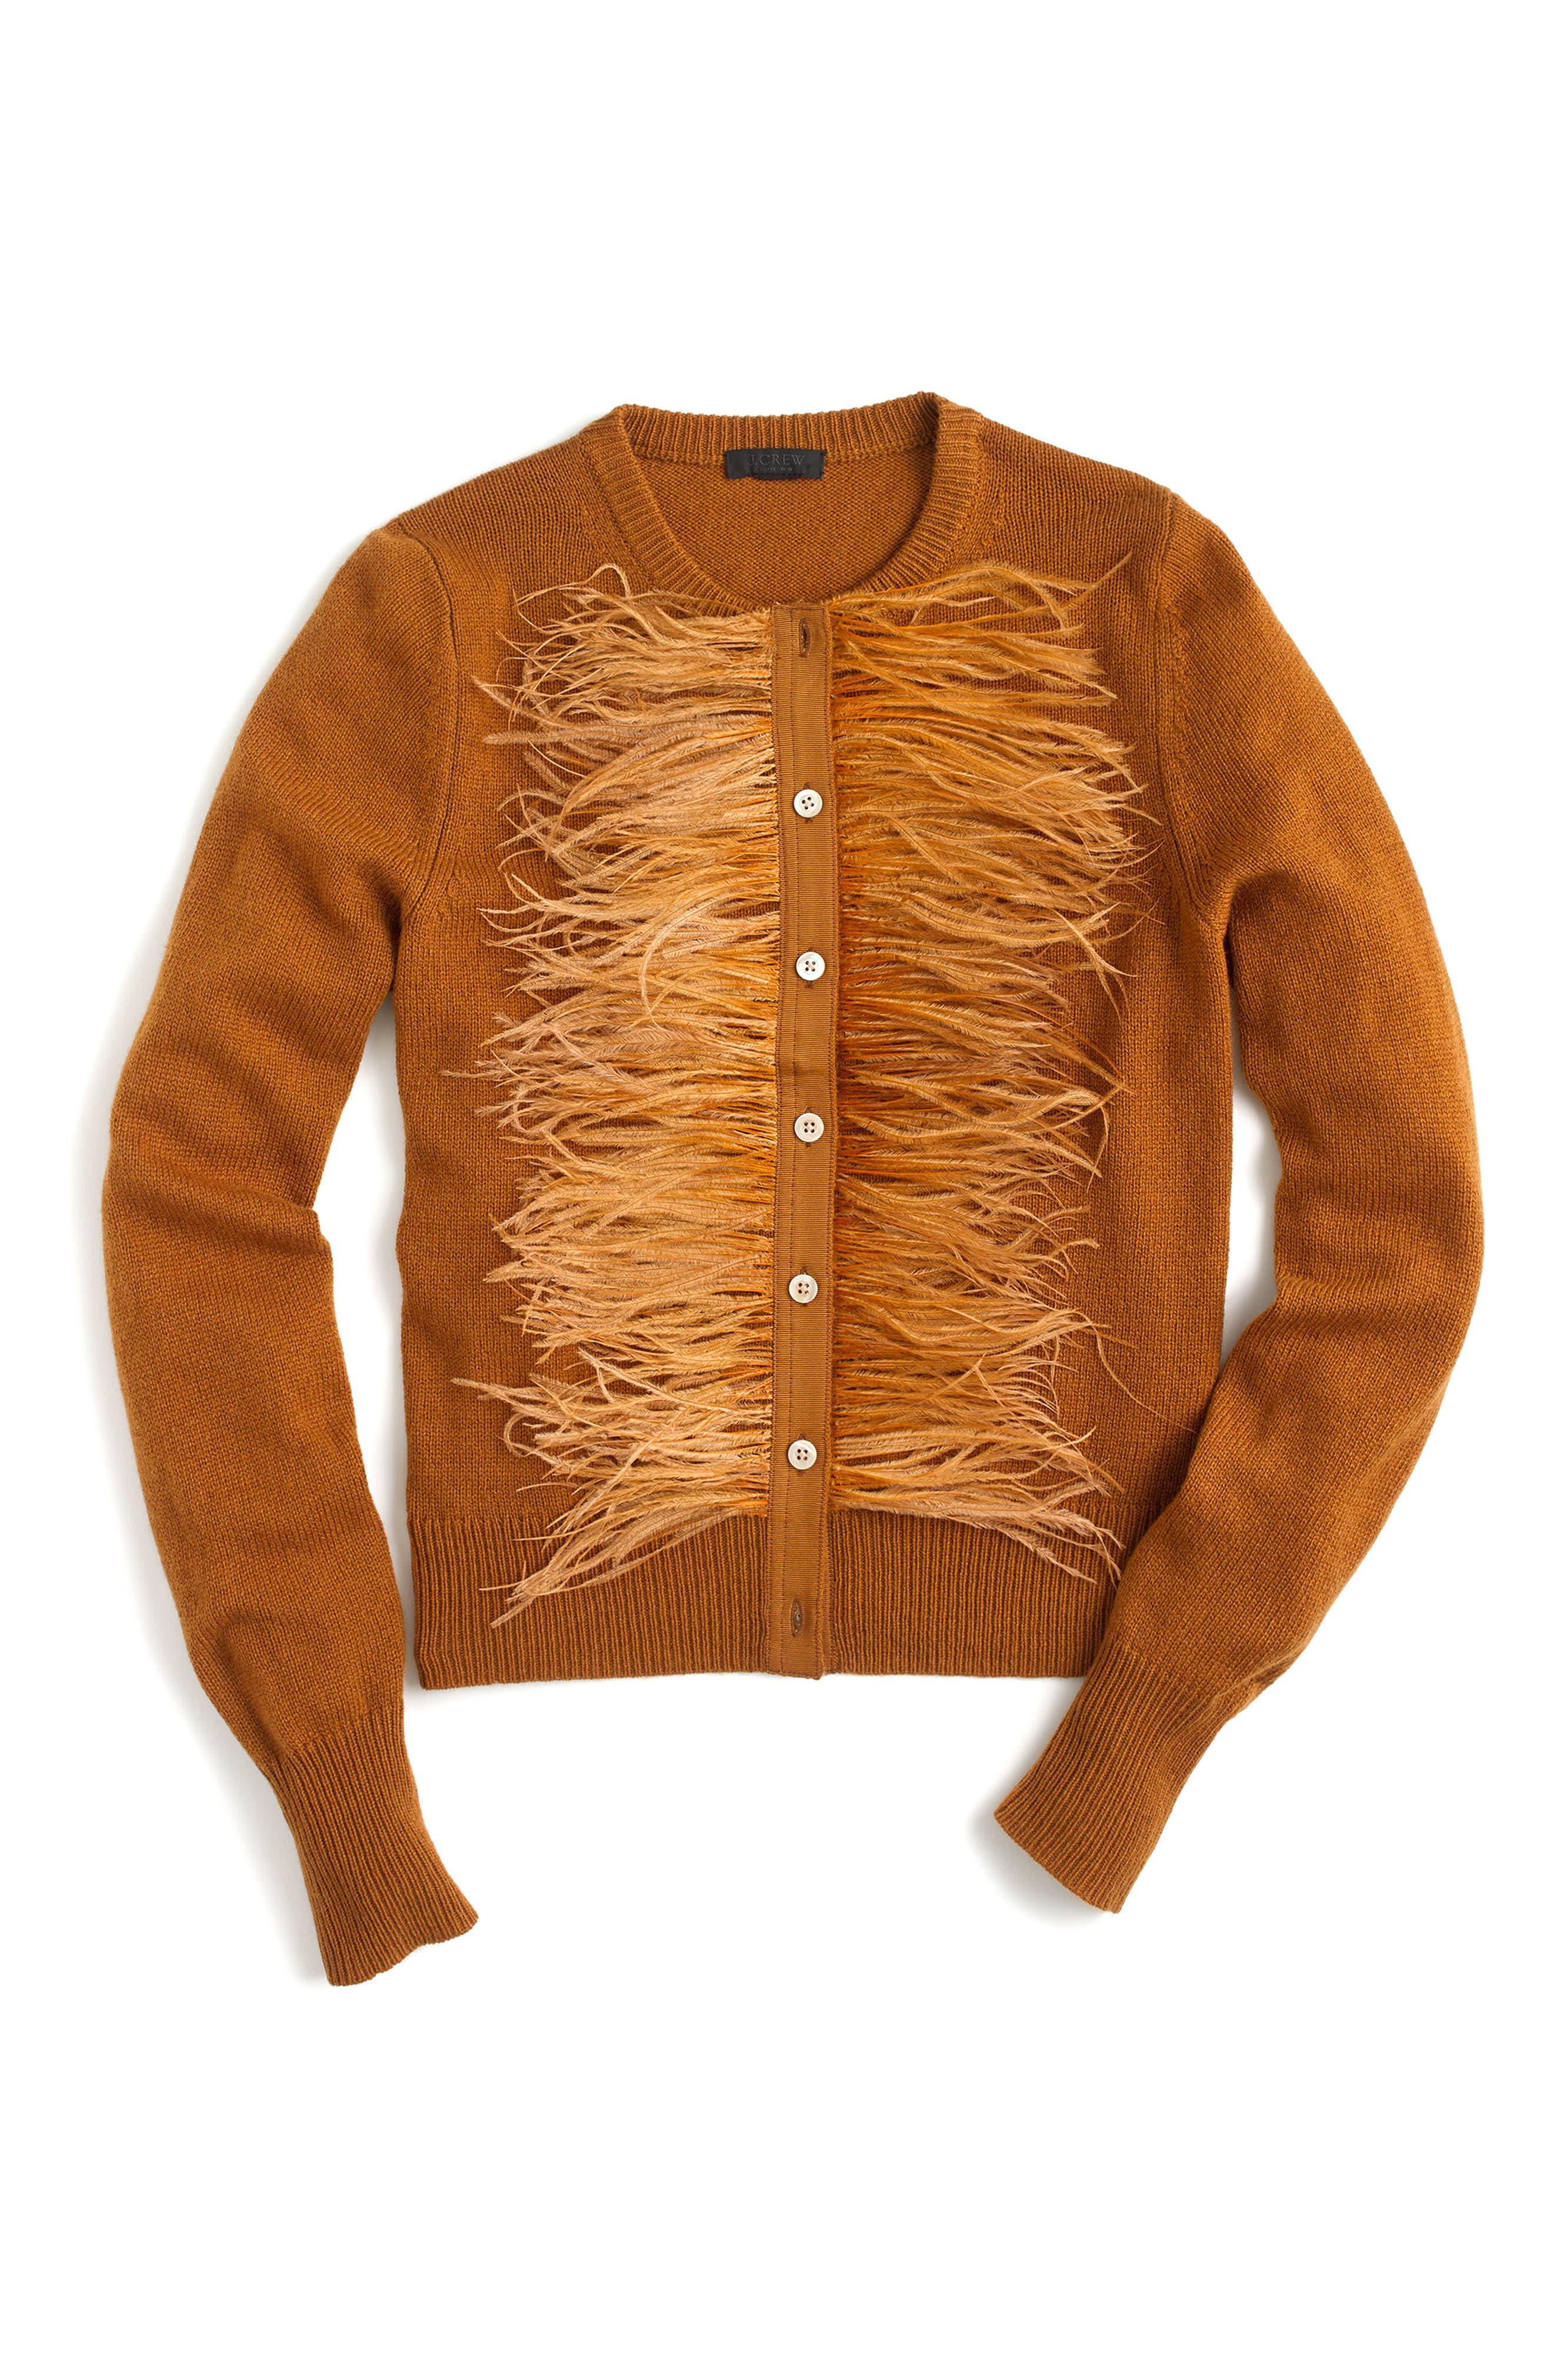 J.Crew Faux Feather Wool Blend Cardigan,                         Main,                         color, Burnished Pecan